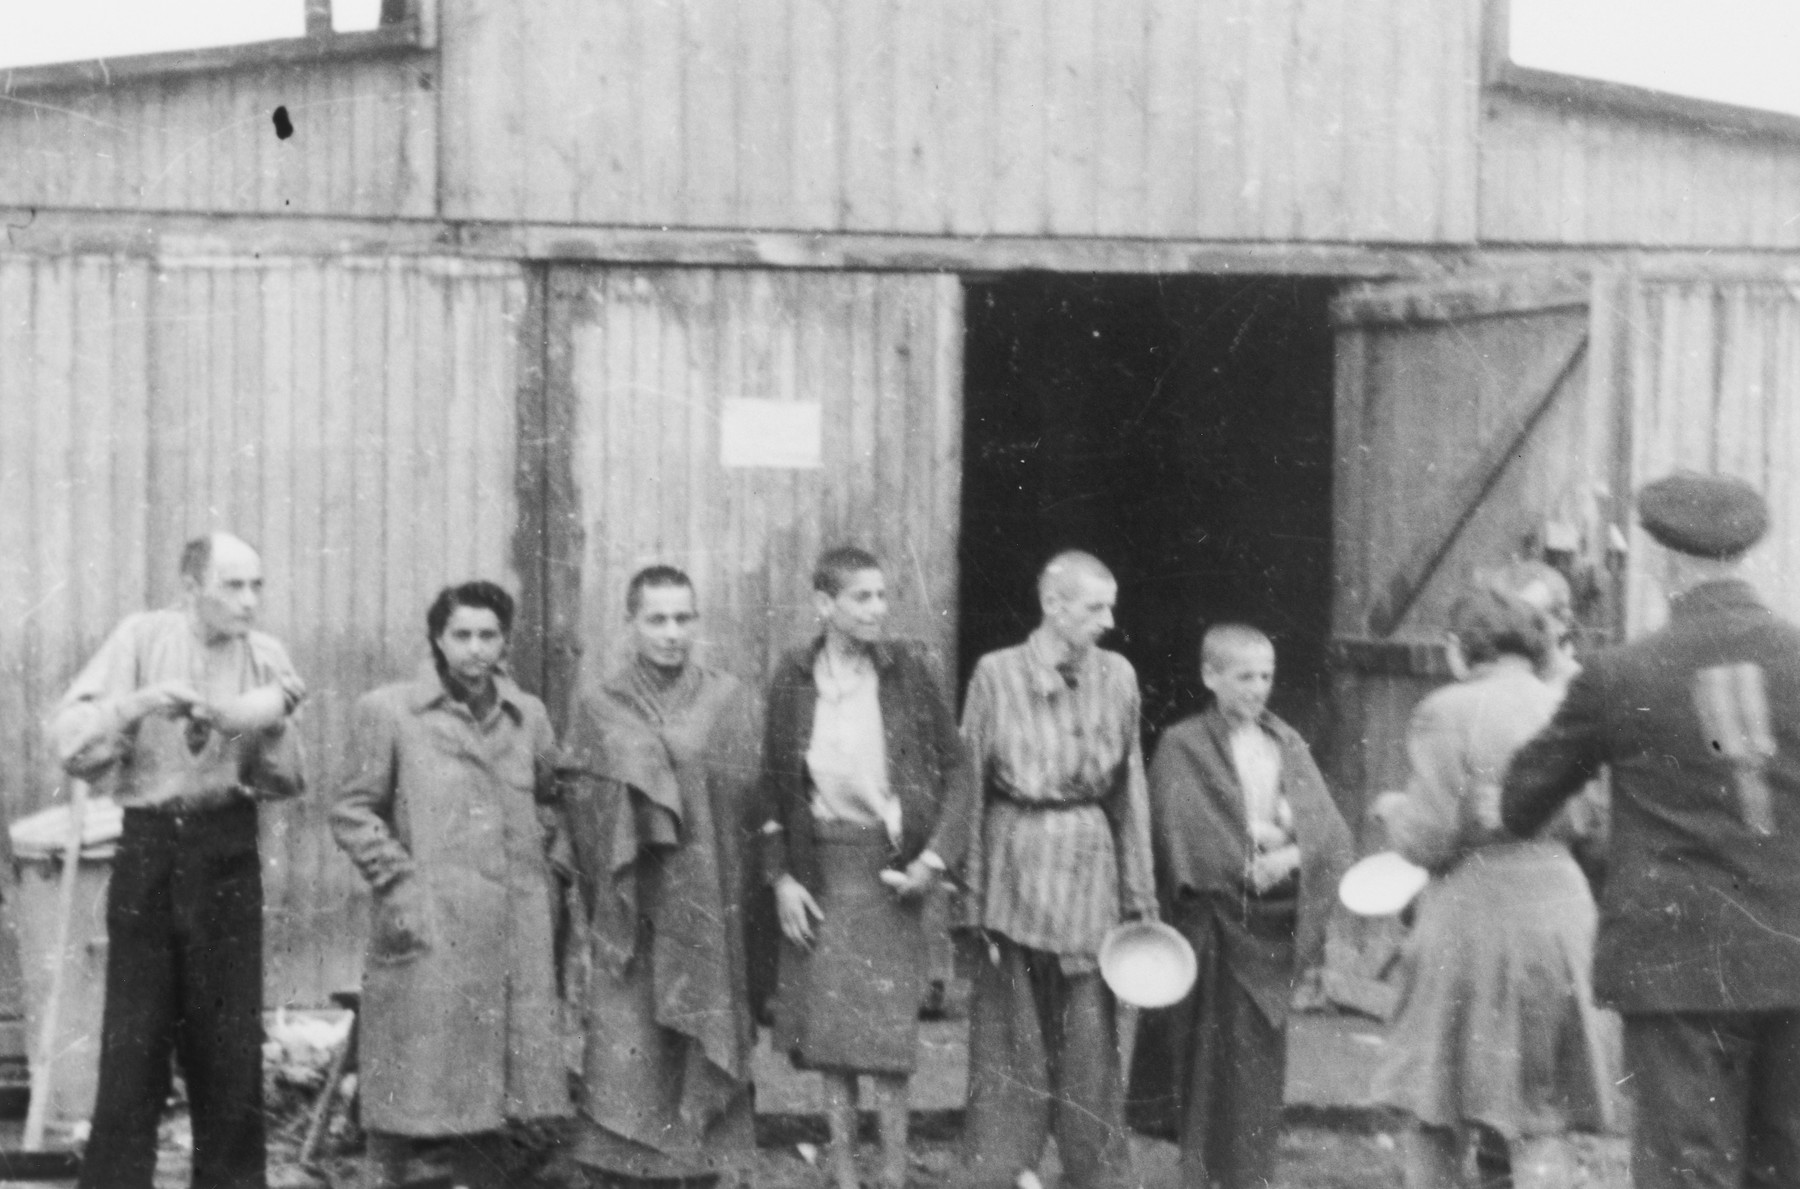 Survivors in the Russian camp of Mauthausen wait with their bowls to receive their rations.